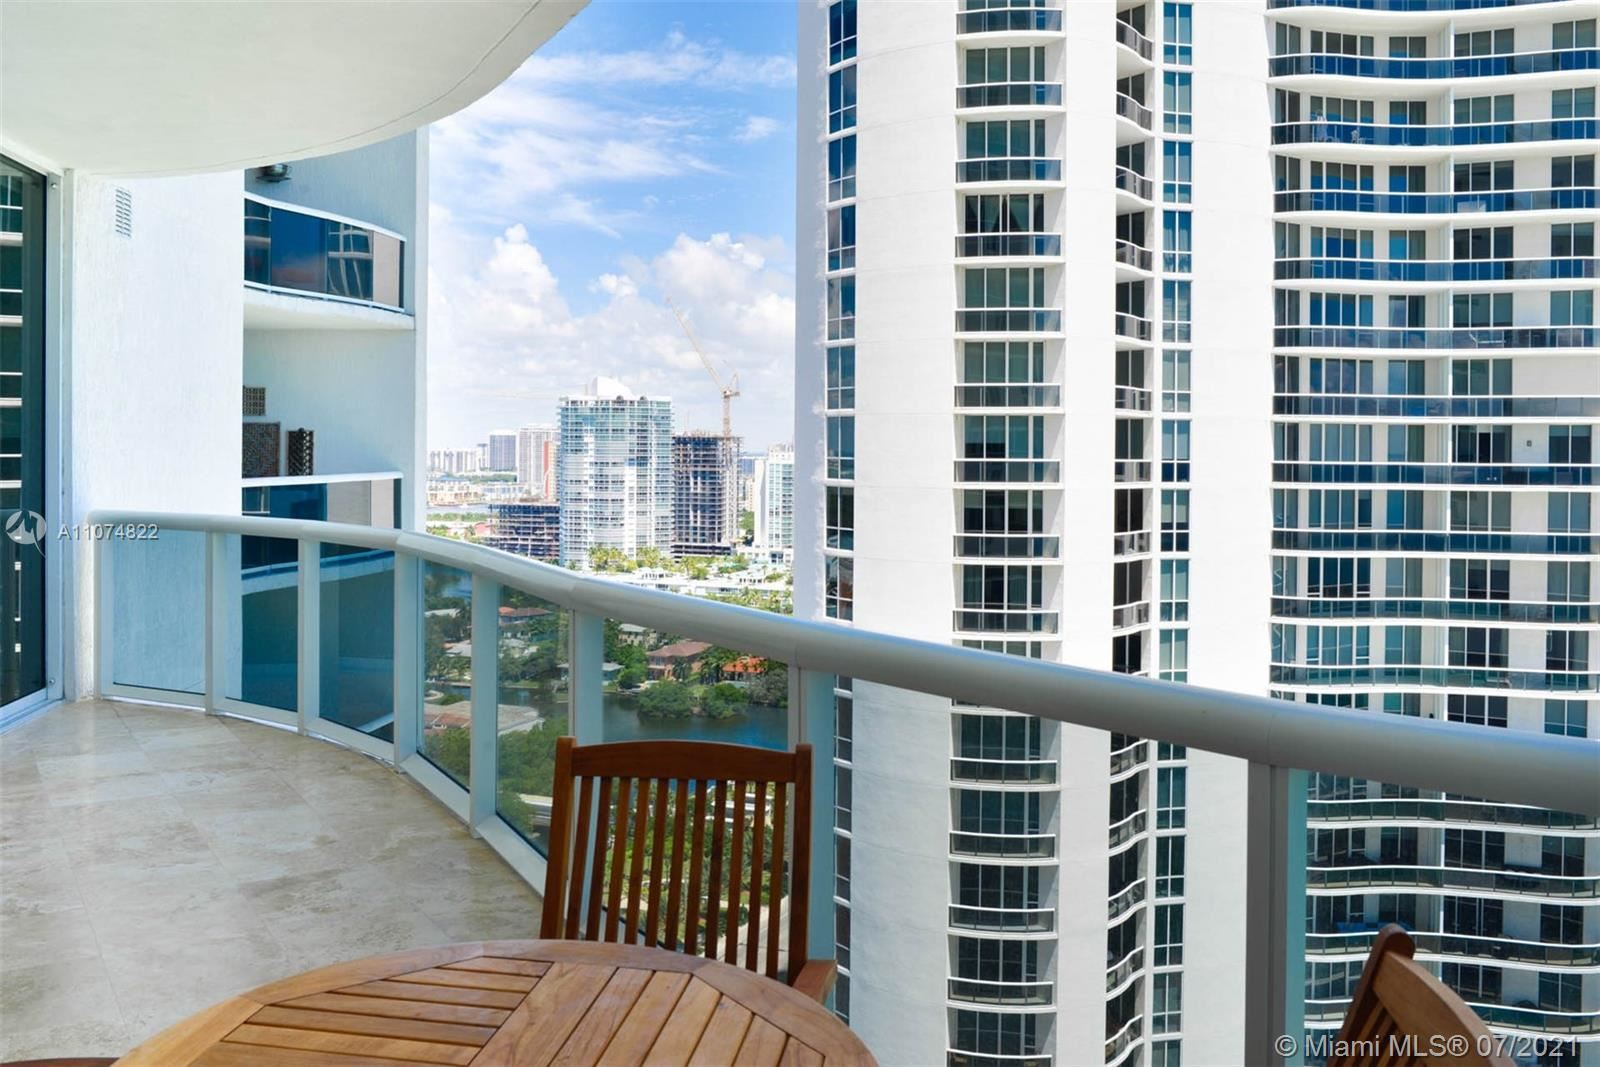 Photo of 15901 Collins Ave #2003, Sunny Isles Beach, FL 33160 (MLS # A11074822)